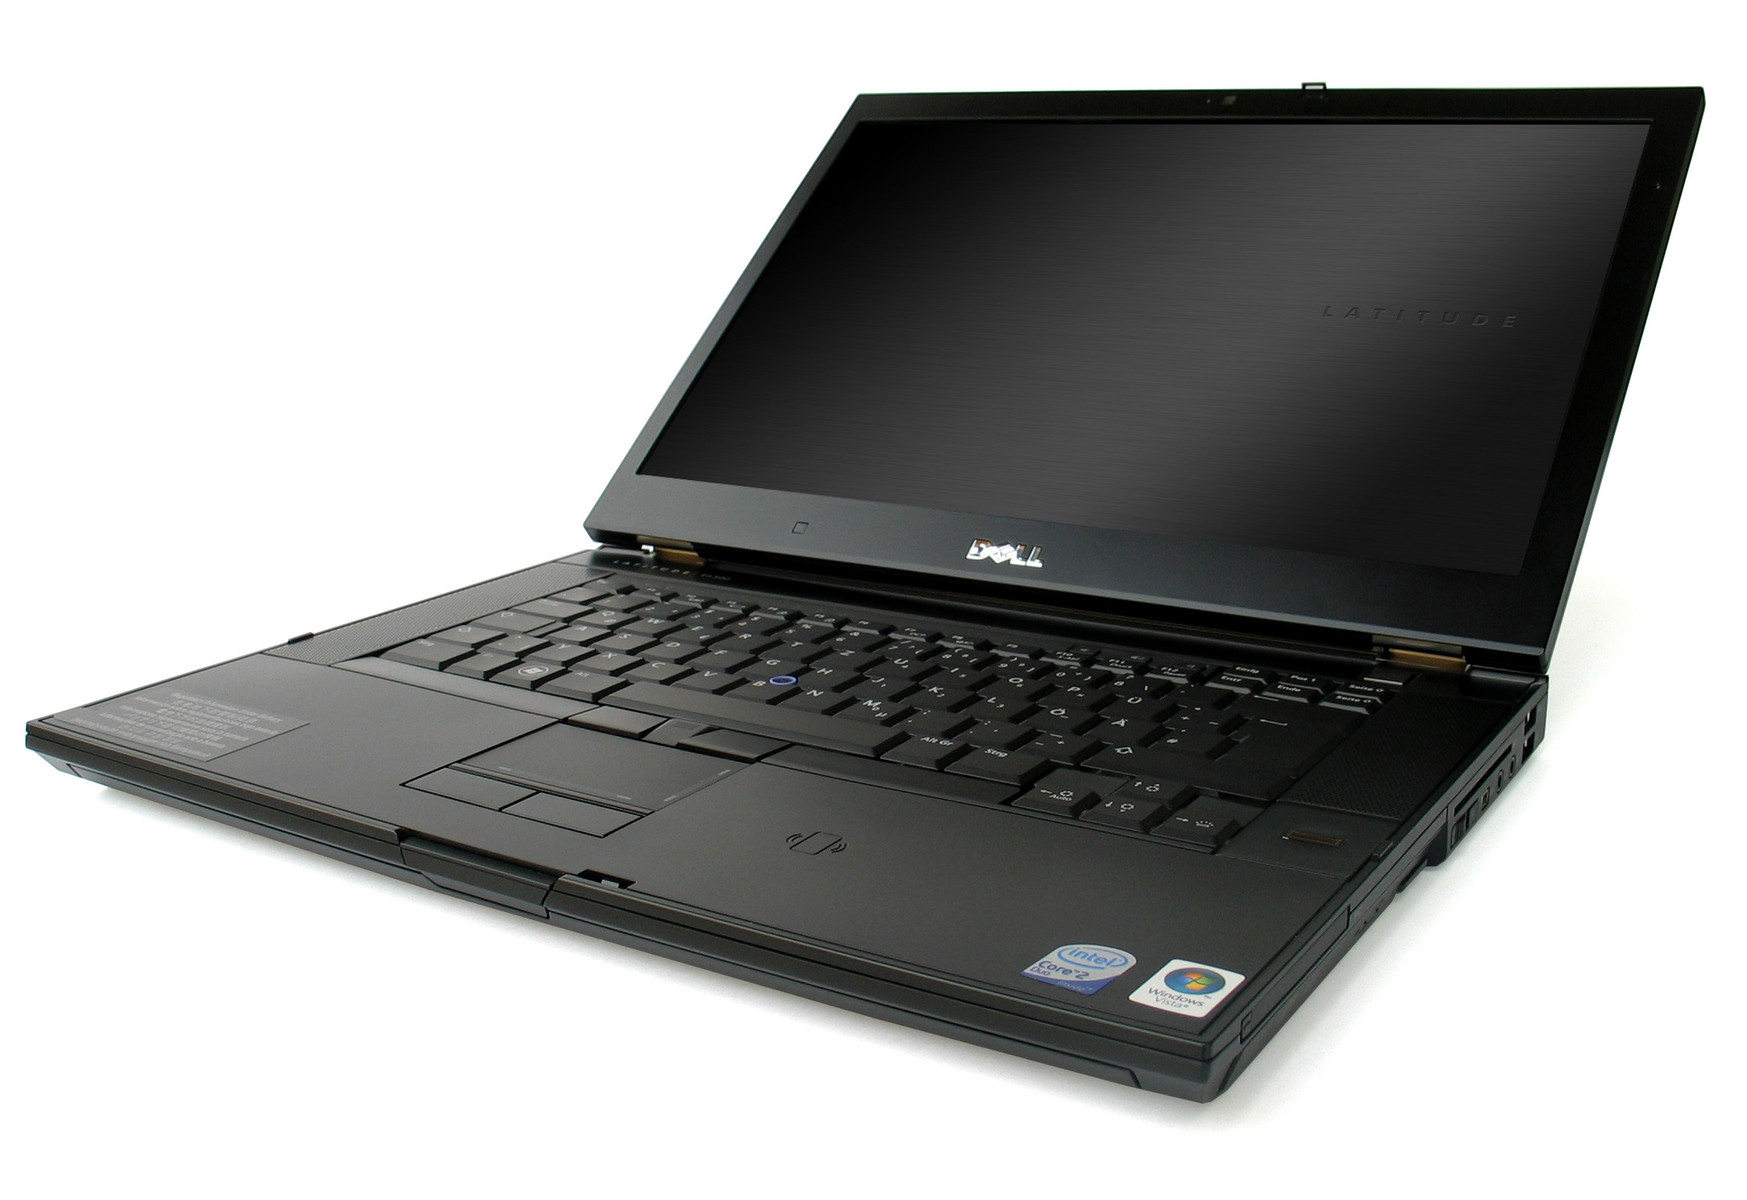 DELL E6500 SOUND WINDOWS VISTA DRIVER